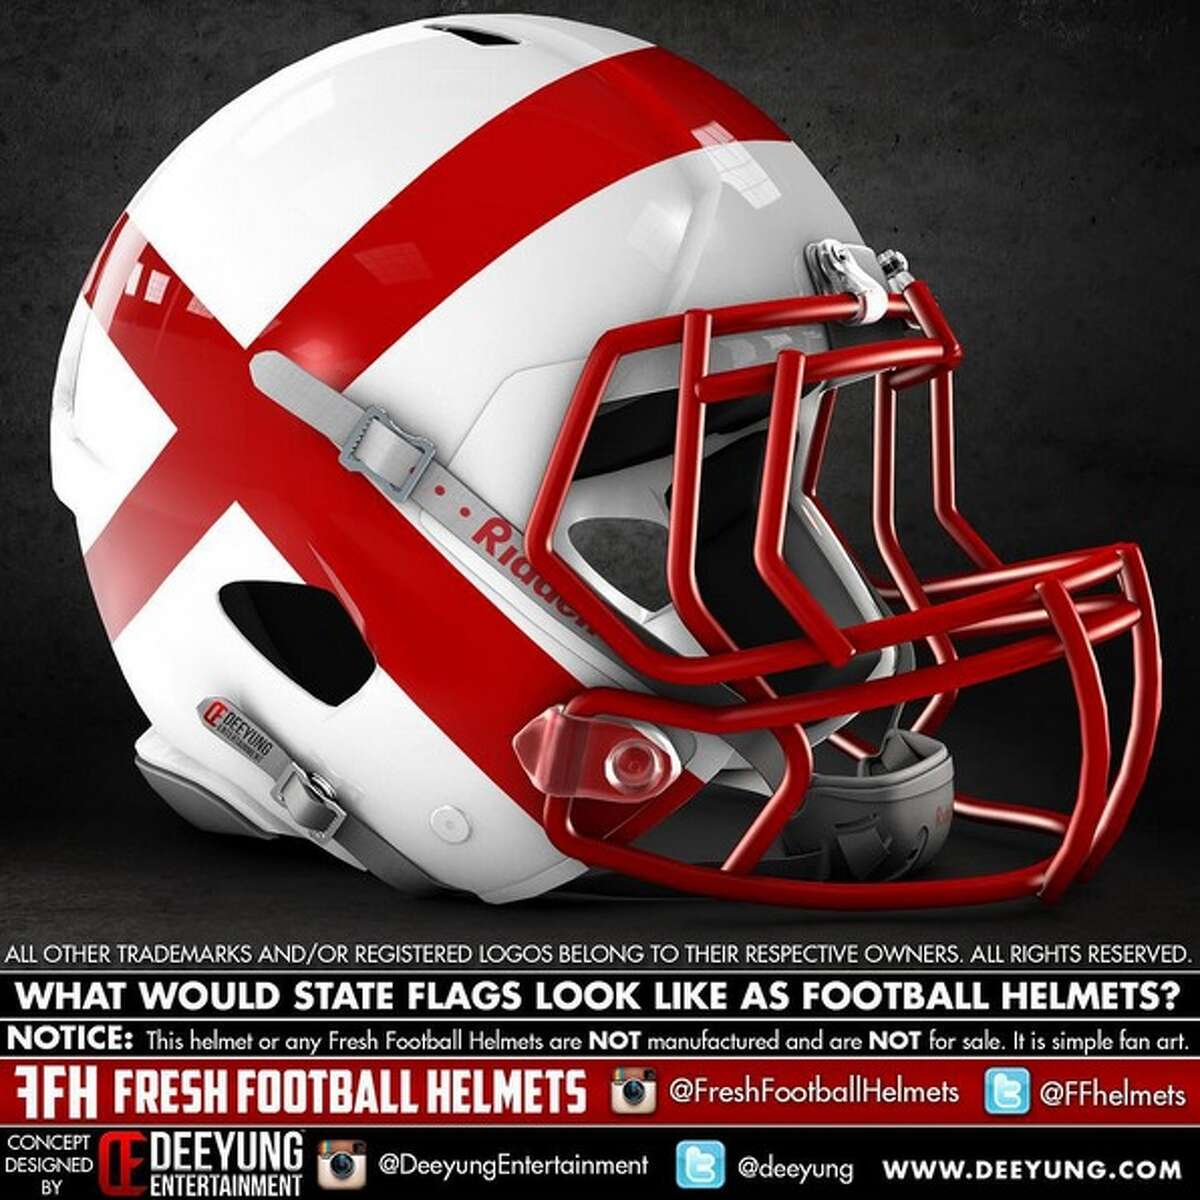 Alabama state flag concept football helmet designed by graphic artist Dylan Young of Deeyung Entertainment.